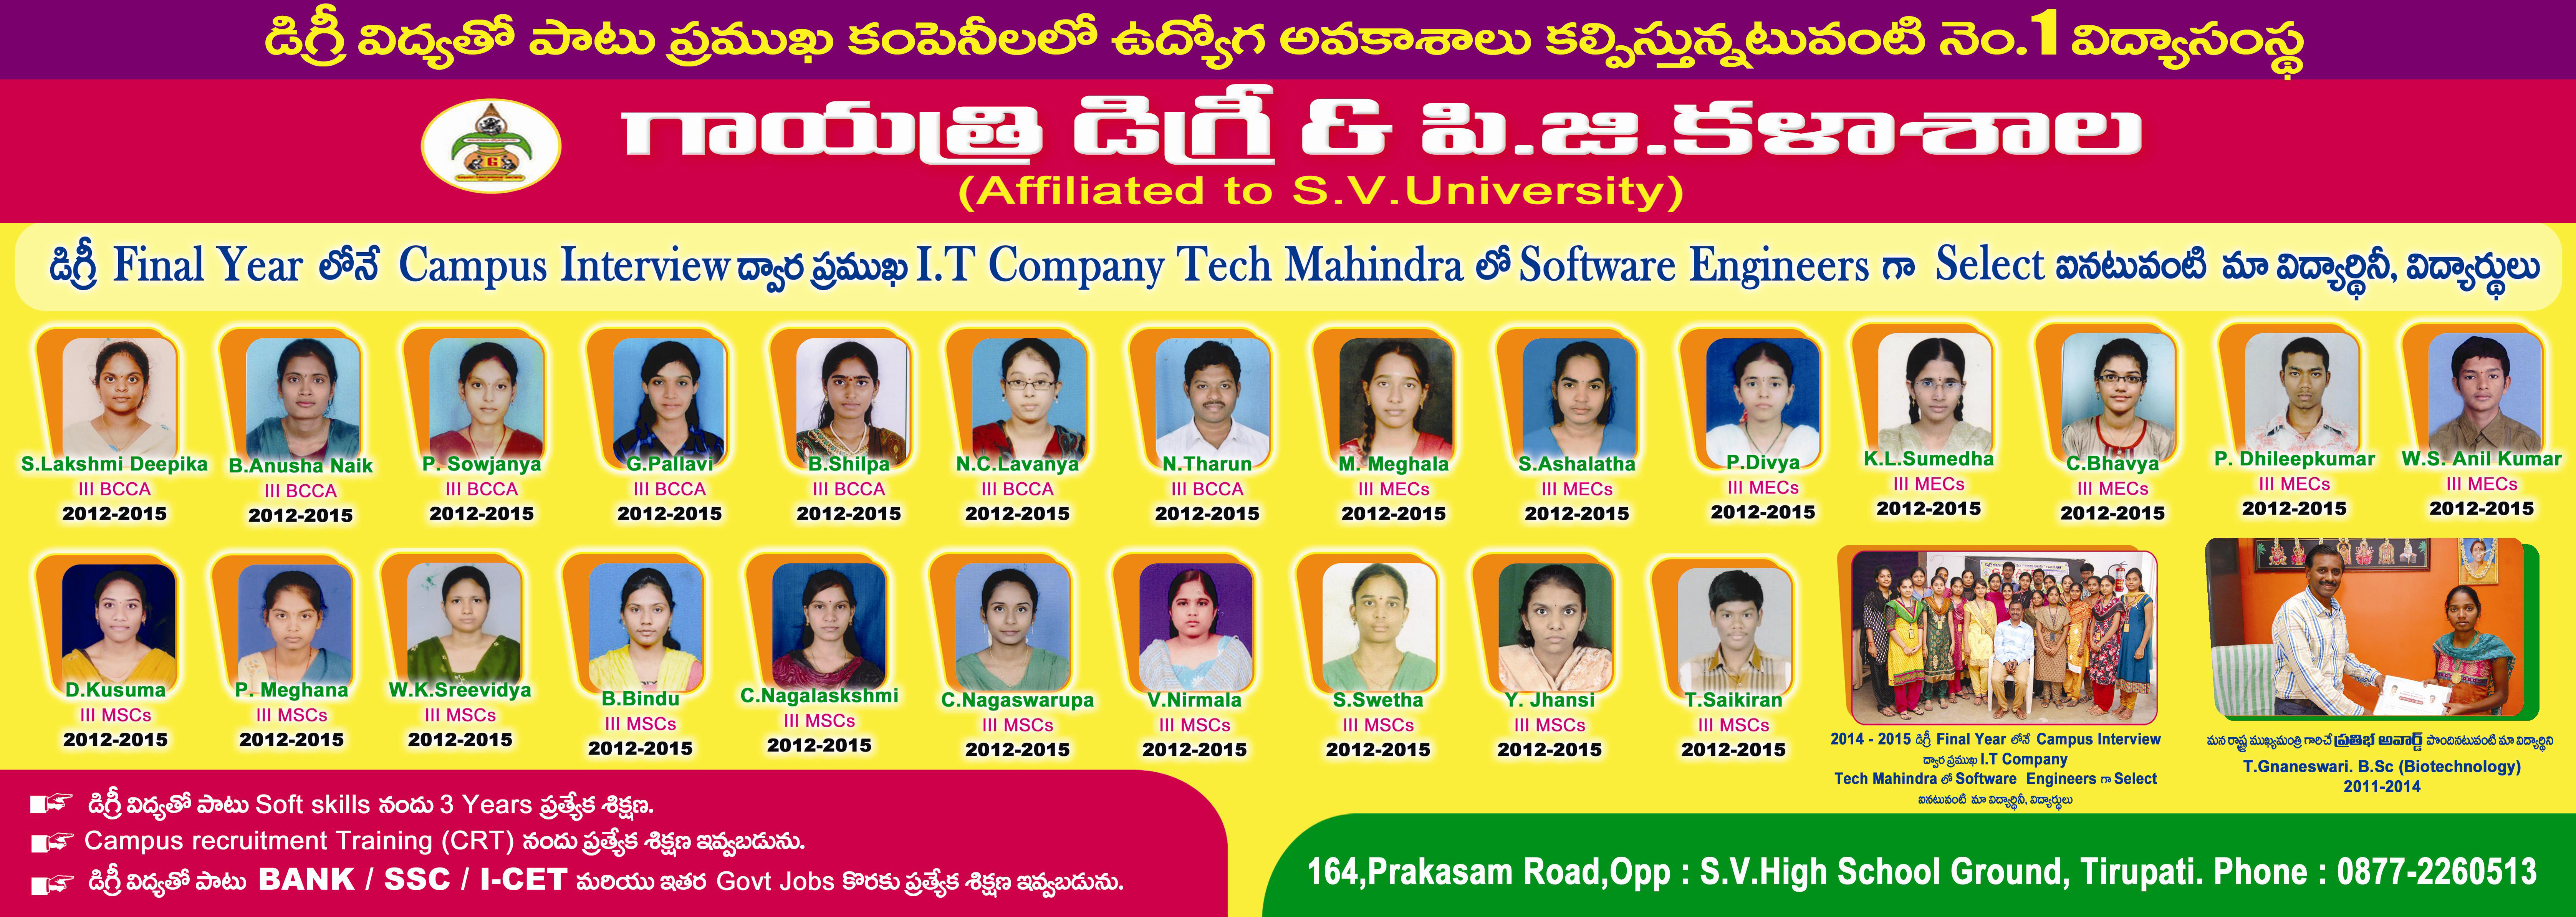 tirupati in college gayatri pg college best college in s swetha b sc mscs secured state 85 rank in i cet ht no 112040435